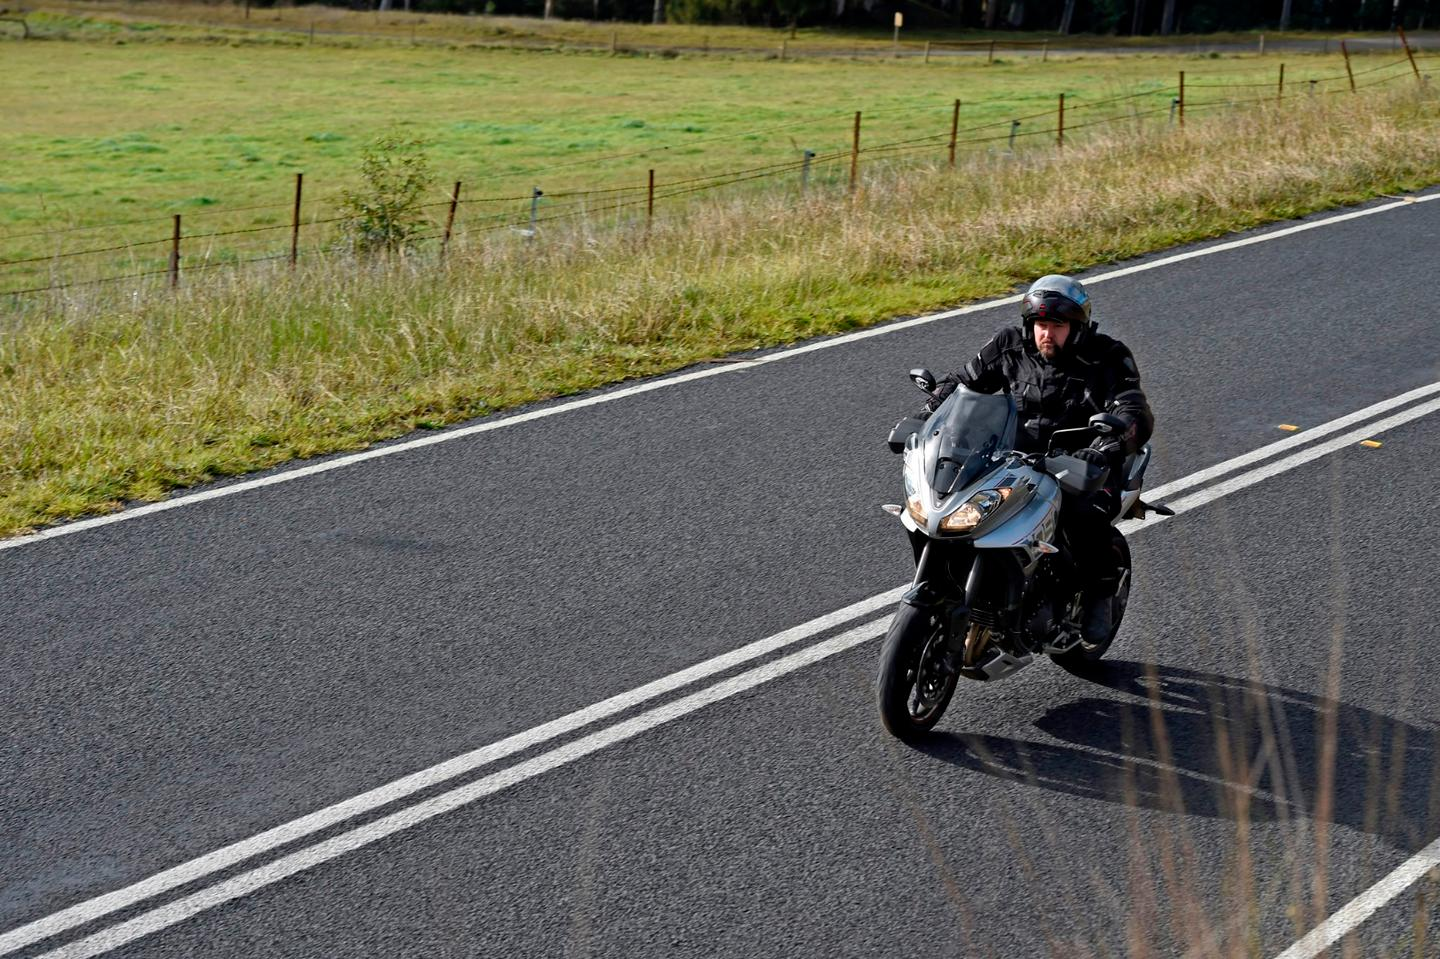 2016 Triumph Tiger Sport 1050: effortless speed, power and refinement